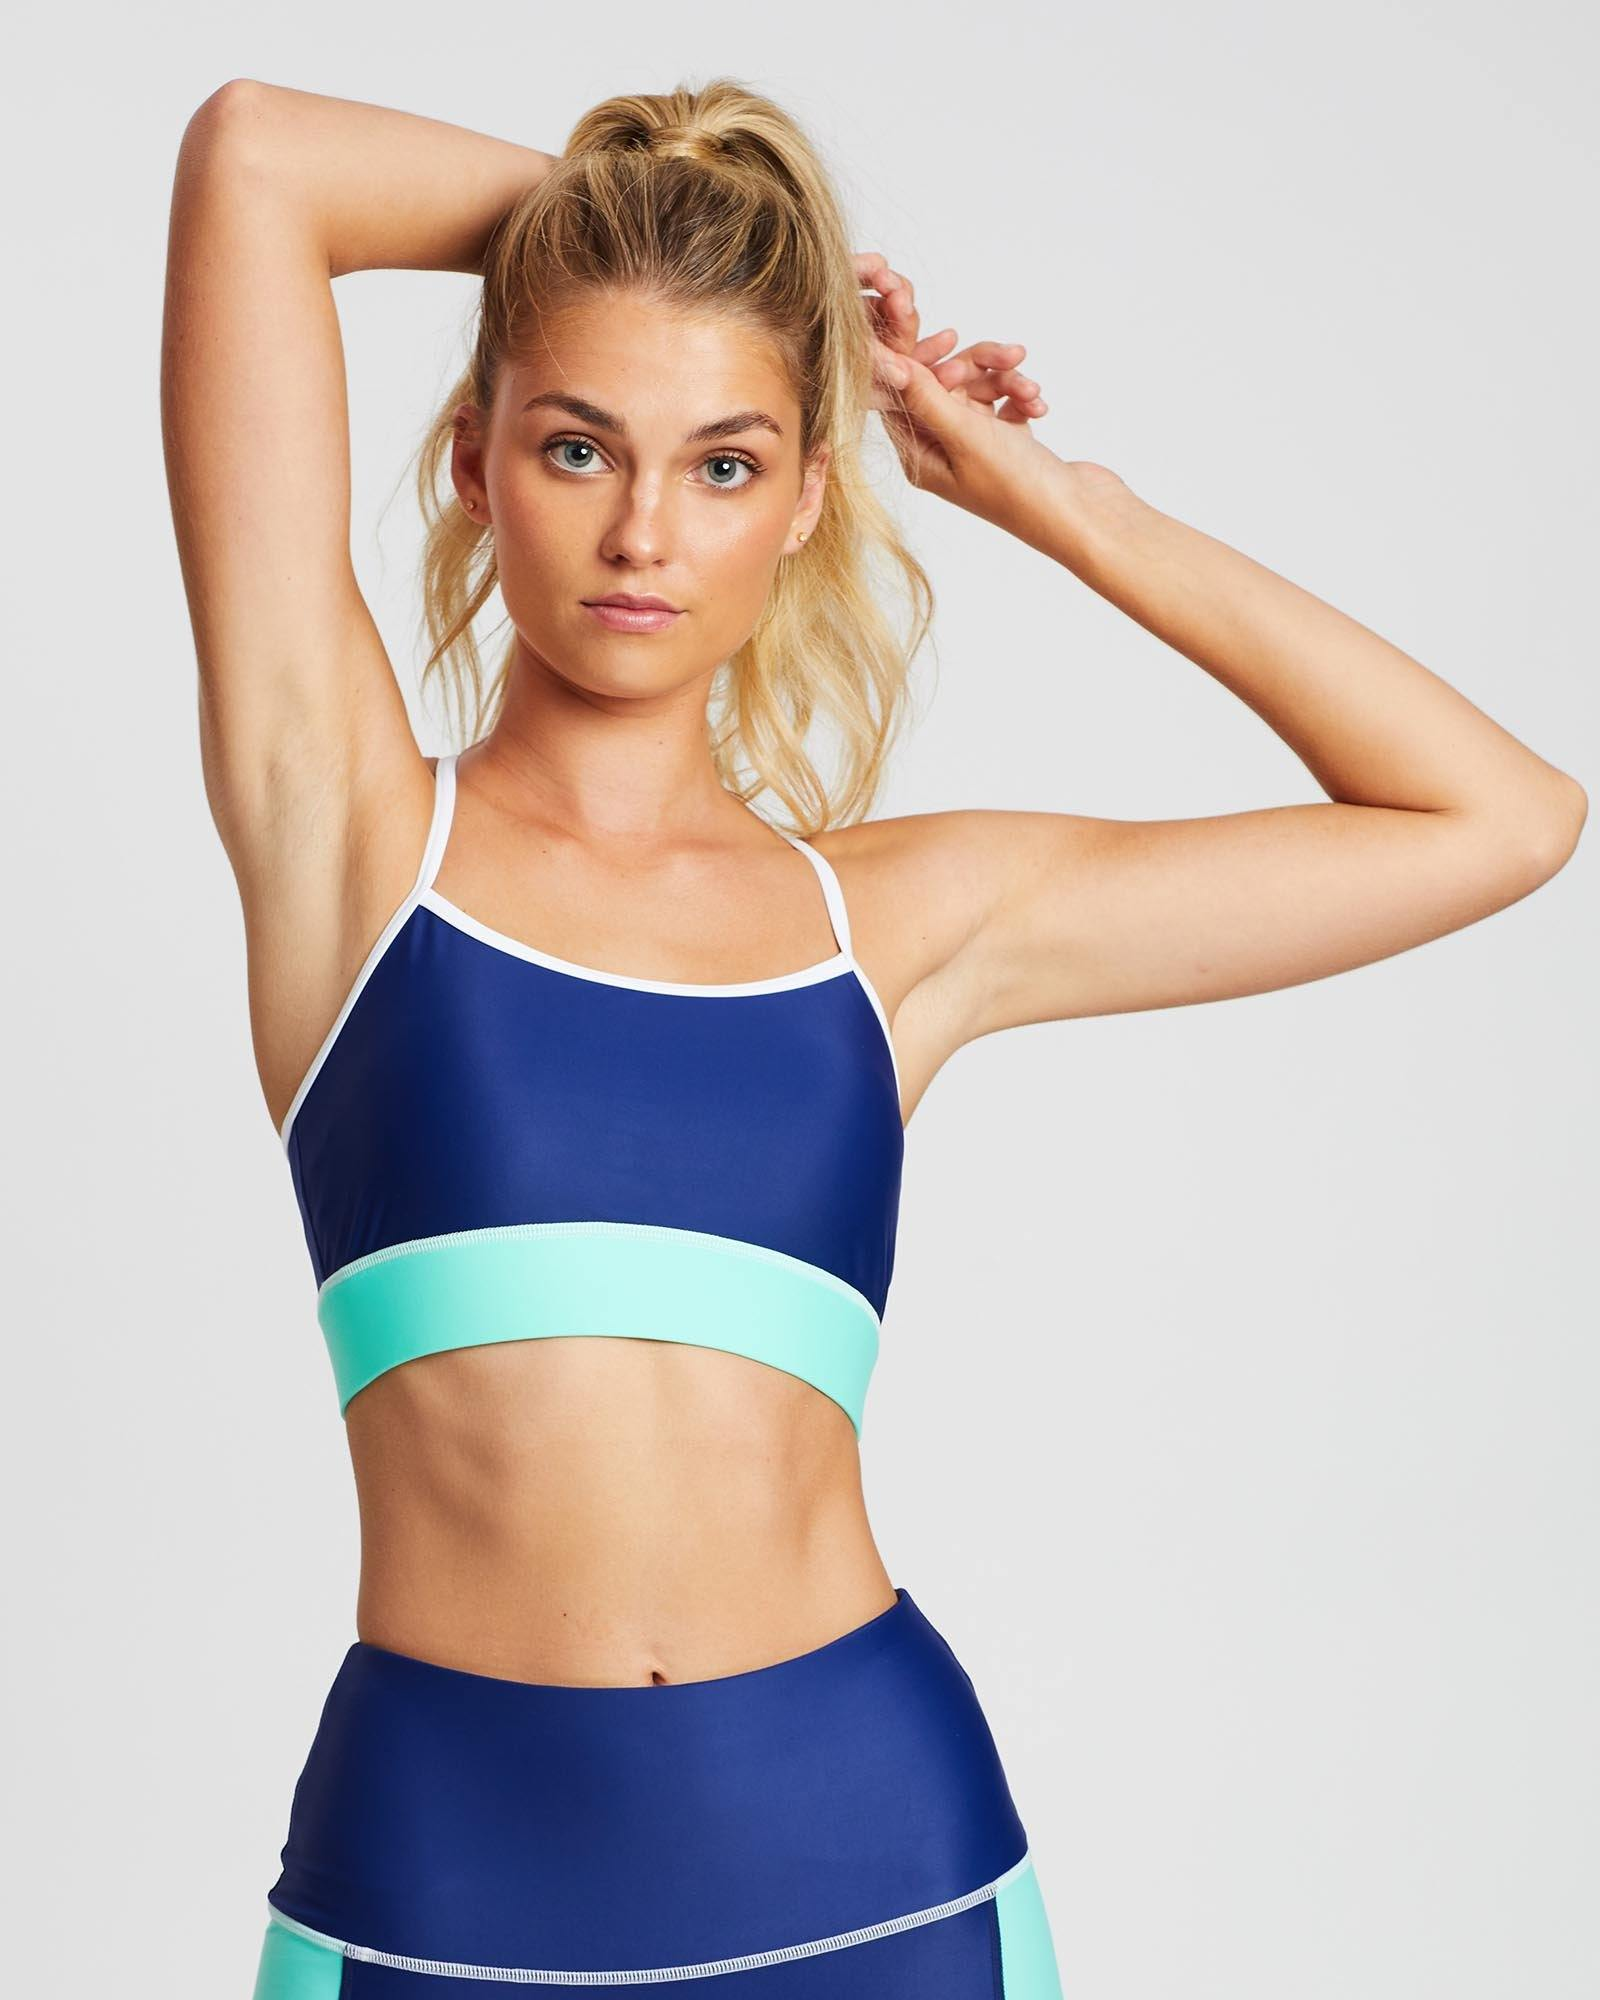 She of the Sea INFRASPINATUS  bra TOP in Blue with Green contrast band and white stitching, ADJUSTABLE STRAPS, FRONT VIEW, great for Pilates and in-studio workouts